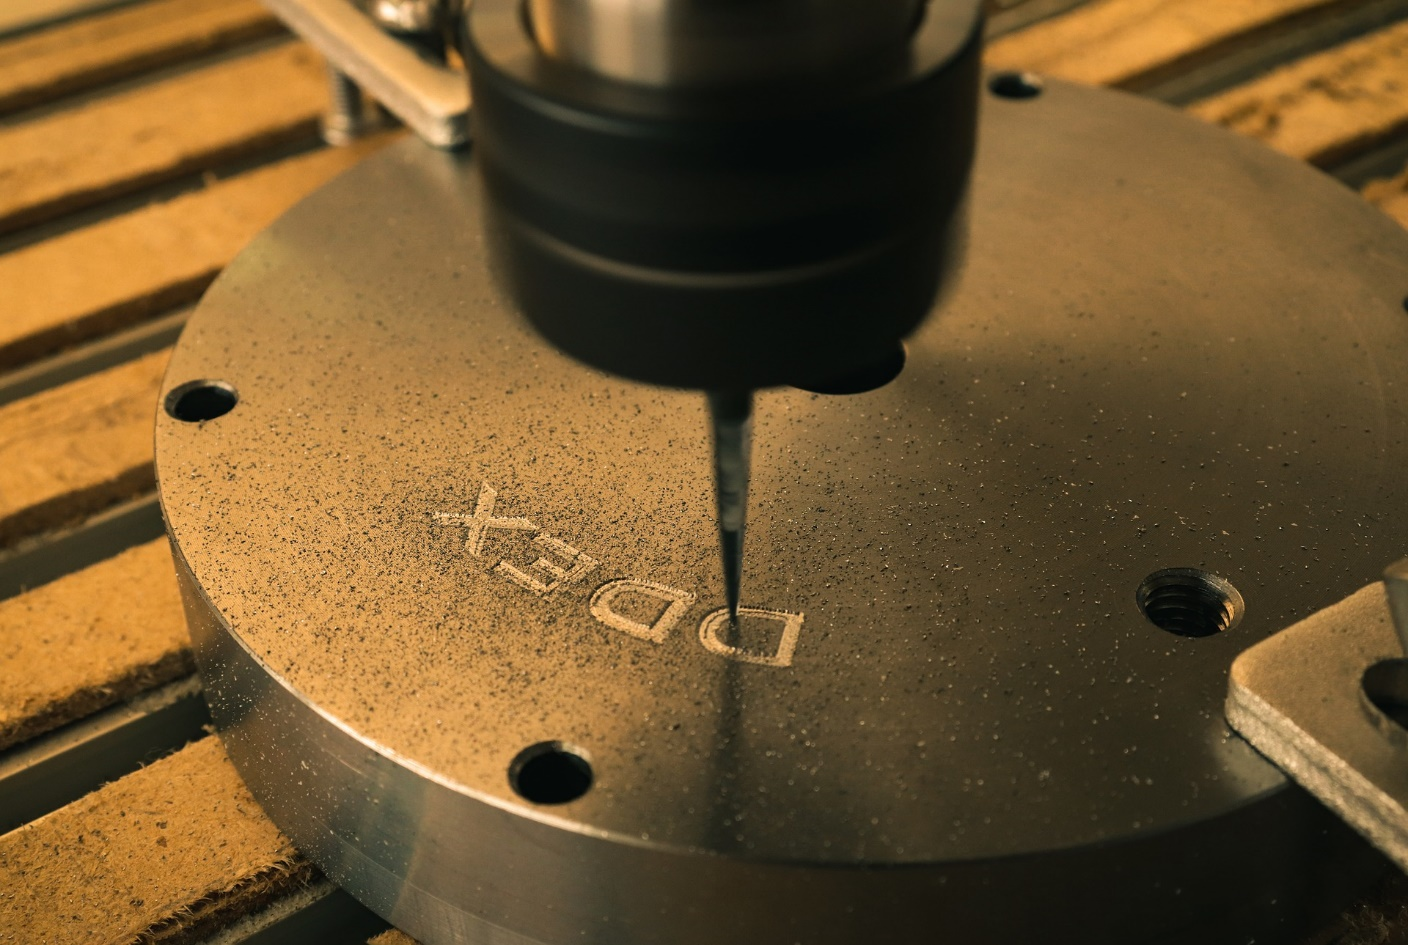 Using a CNC machine to engrave a name on an object